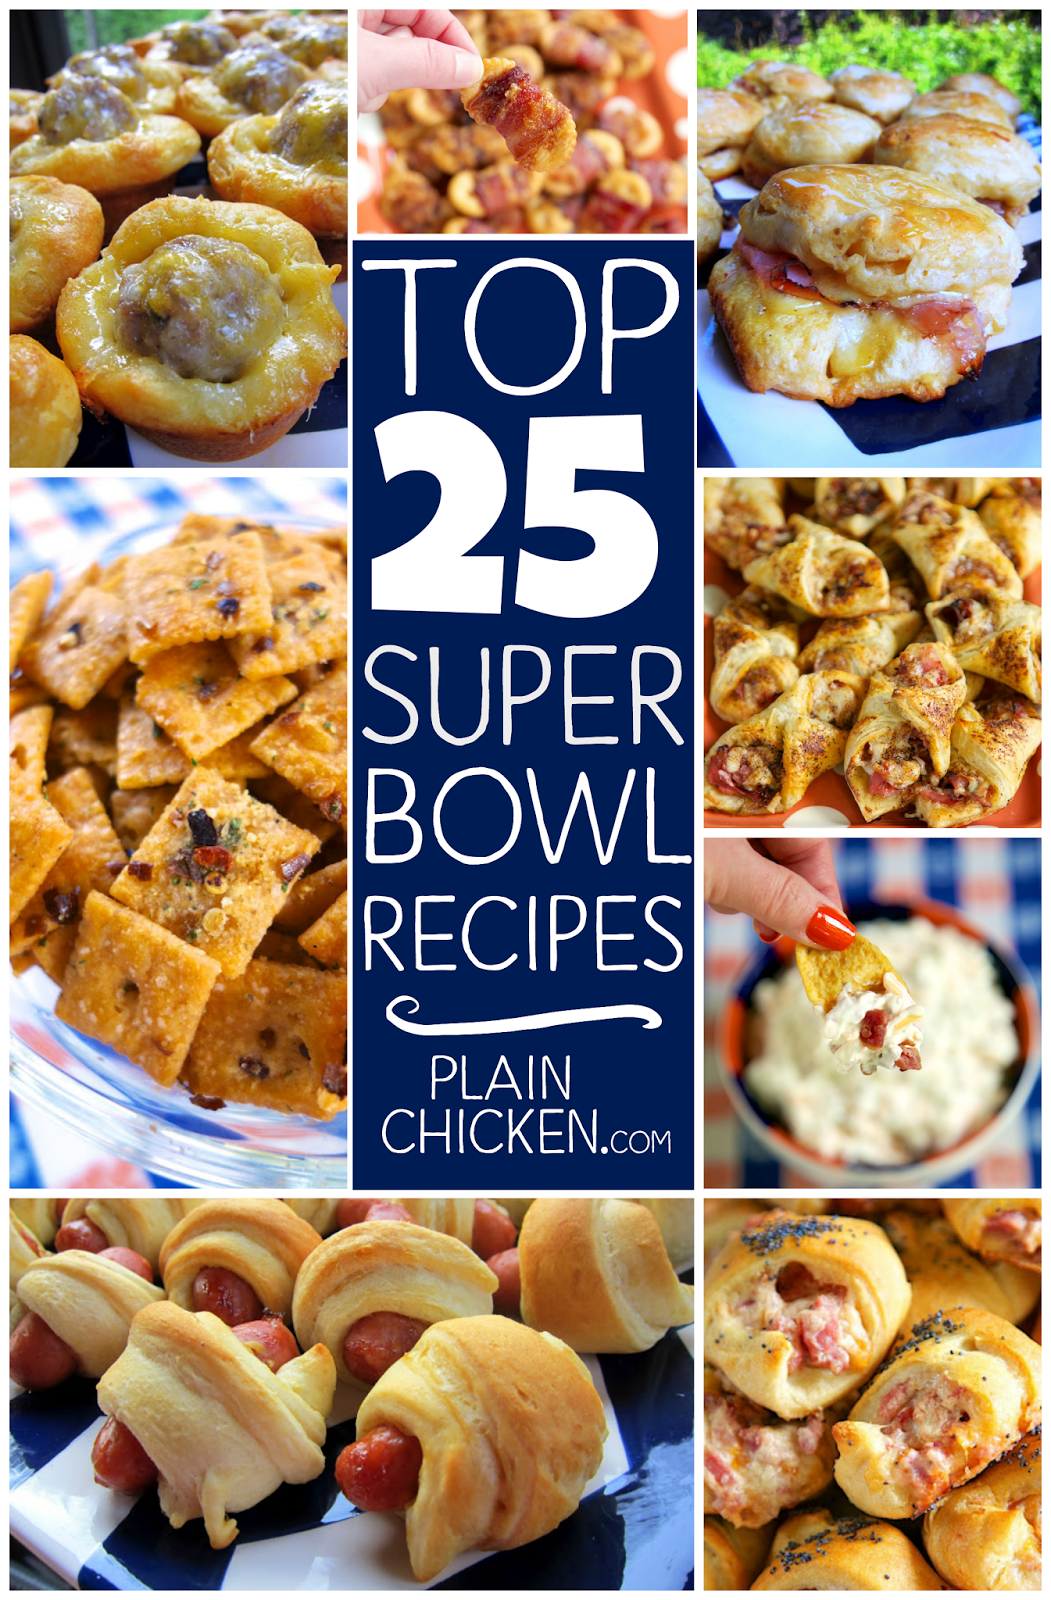 Best 25 1970s Fashion Men Ideas On Pinterest: Top 25 Super Bowl Recipes